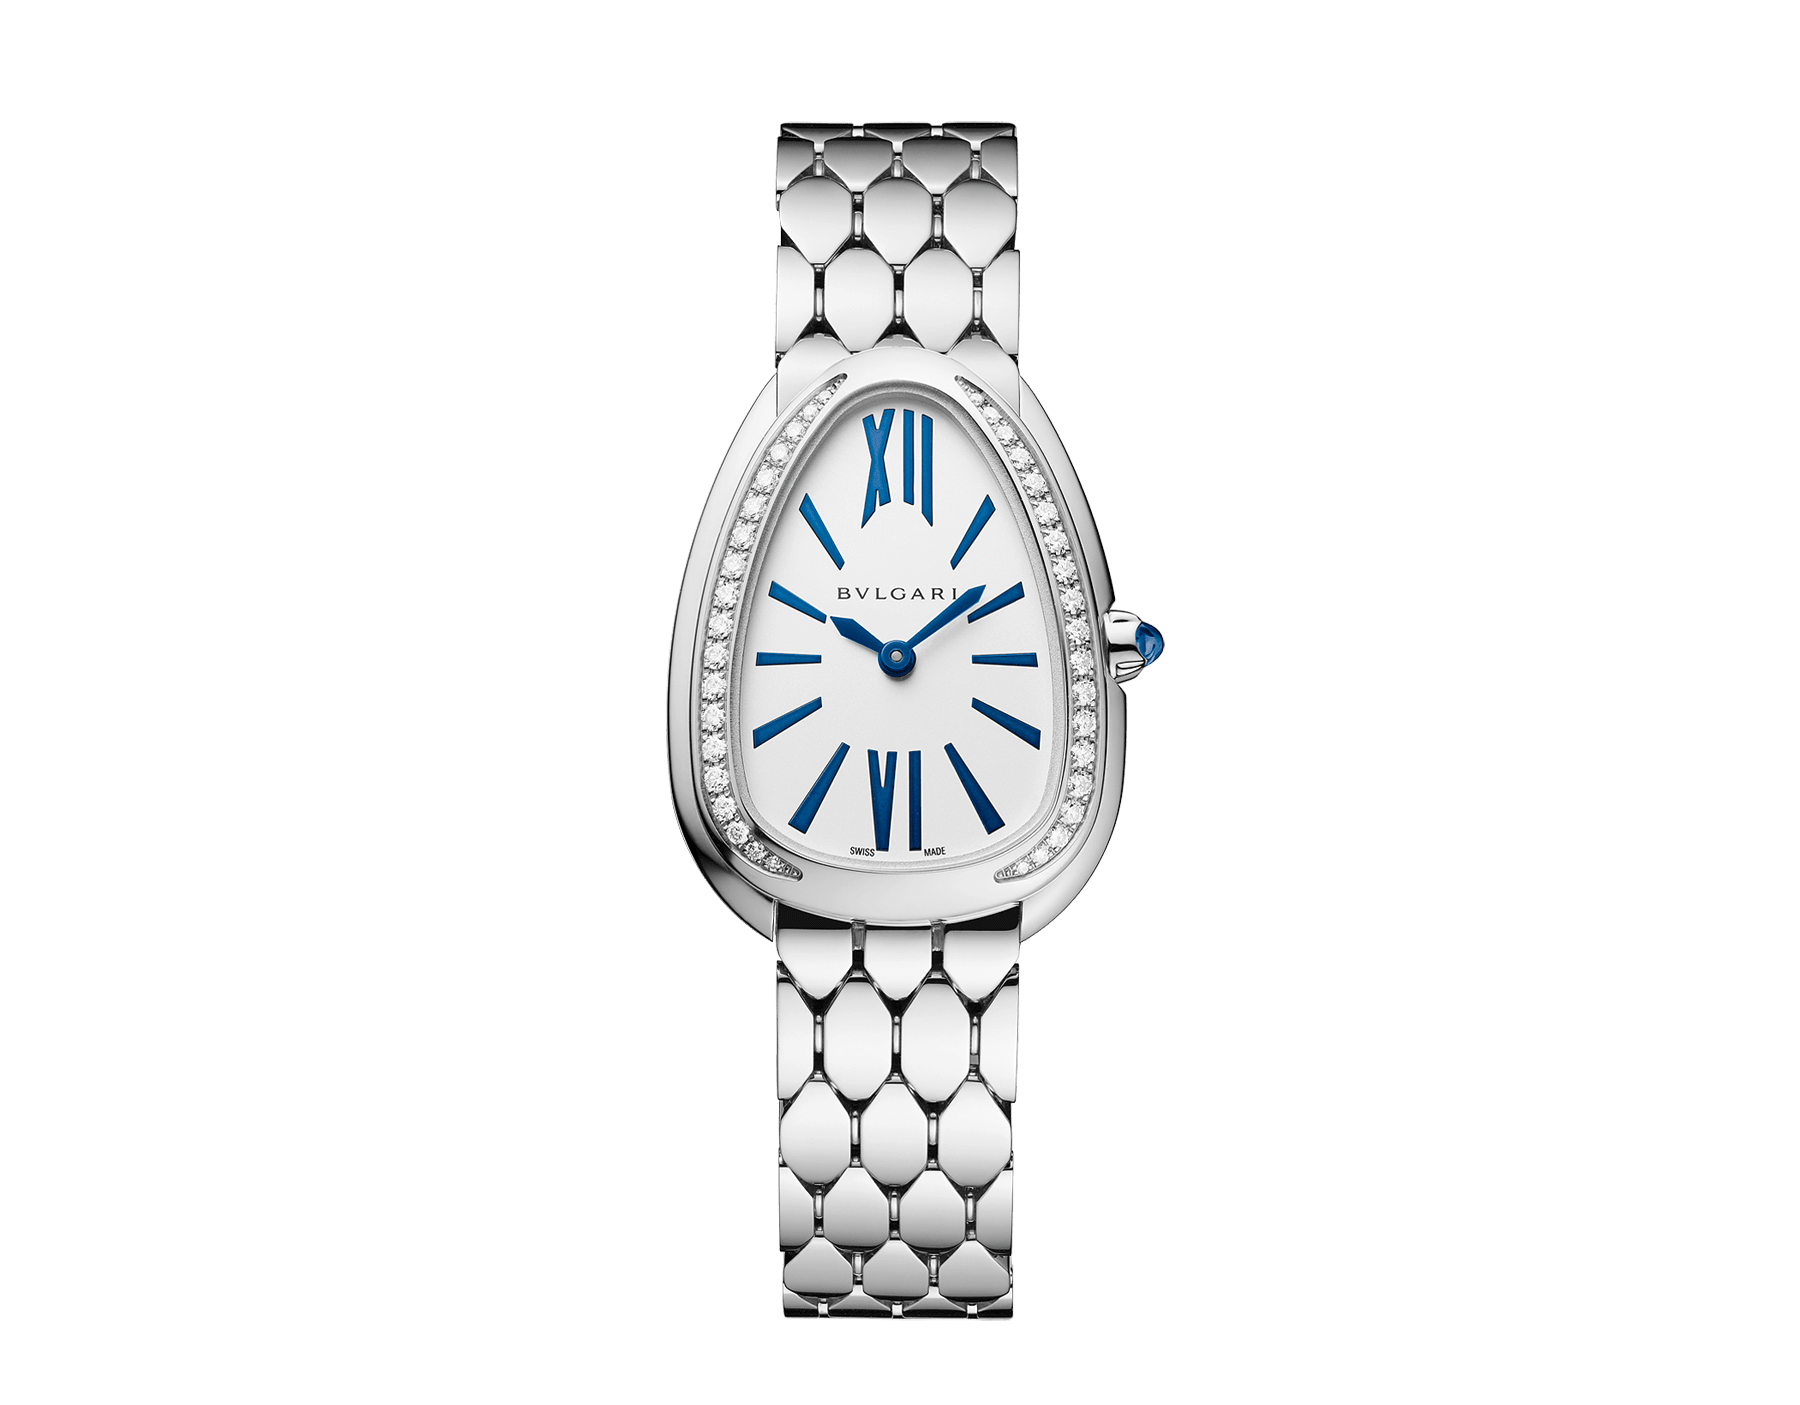 Serpenti Seduttori watch with 18 kt white gold case, 18 kt white gold bracelet, 18 kt white gold bezel set with diamonds and a white silver opaline dial. 103148 image 1